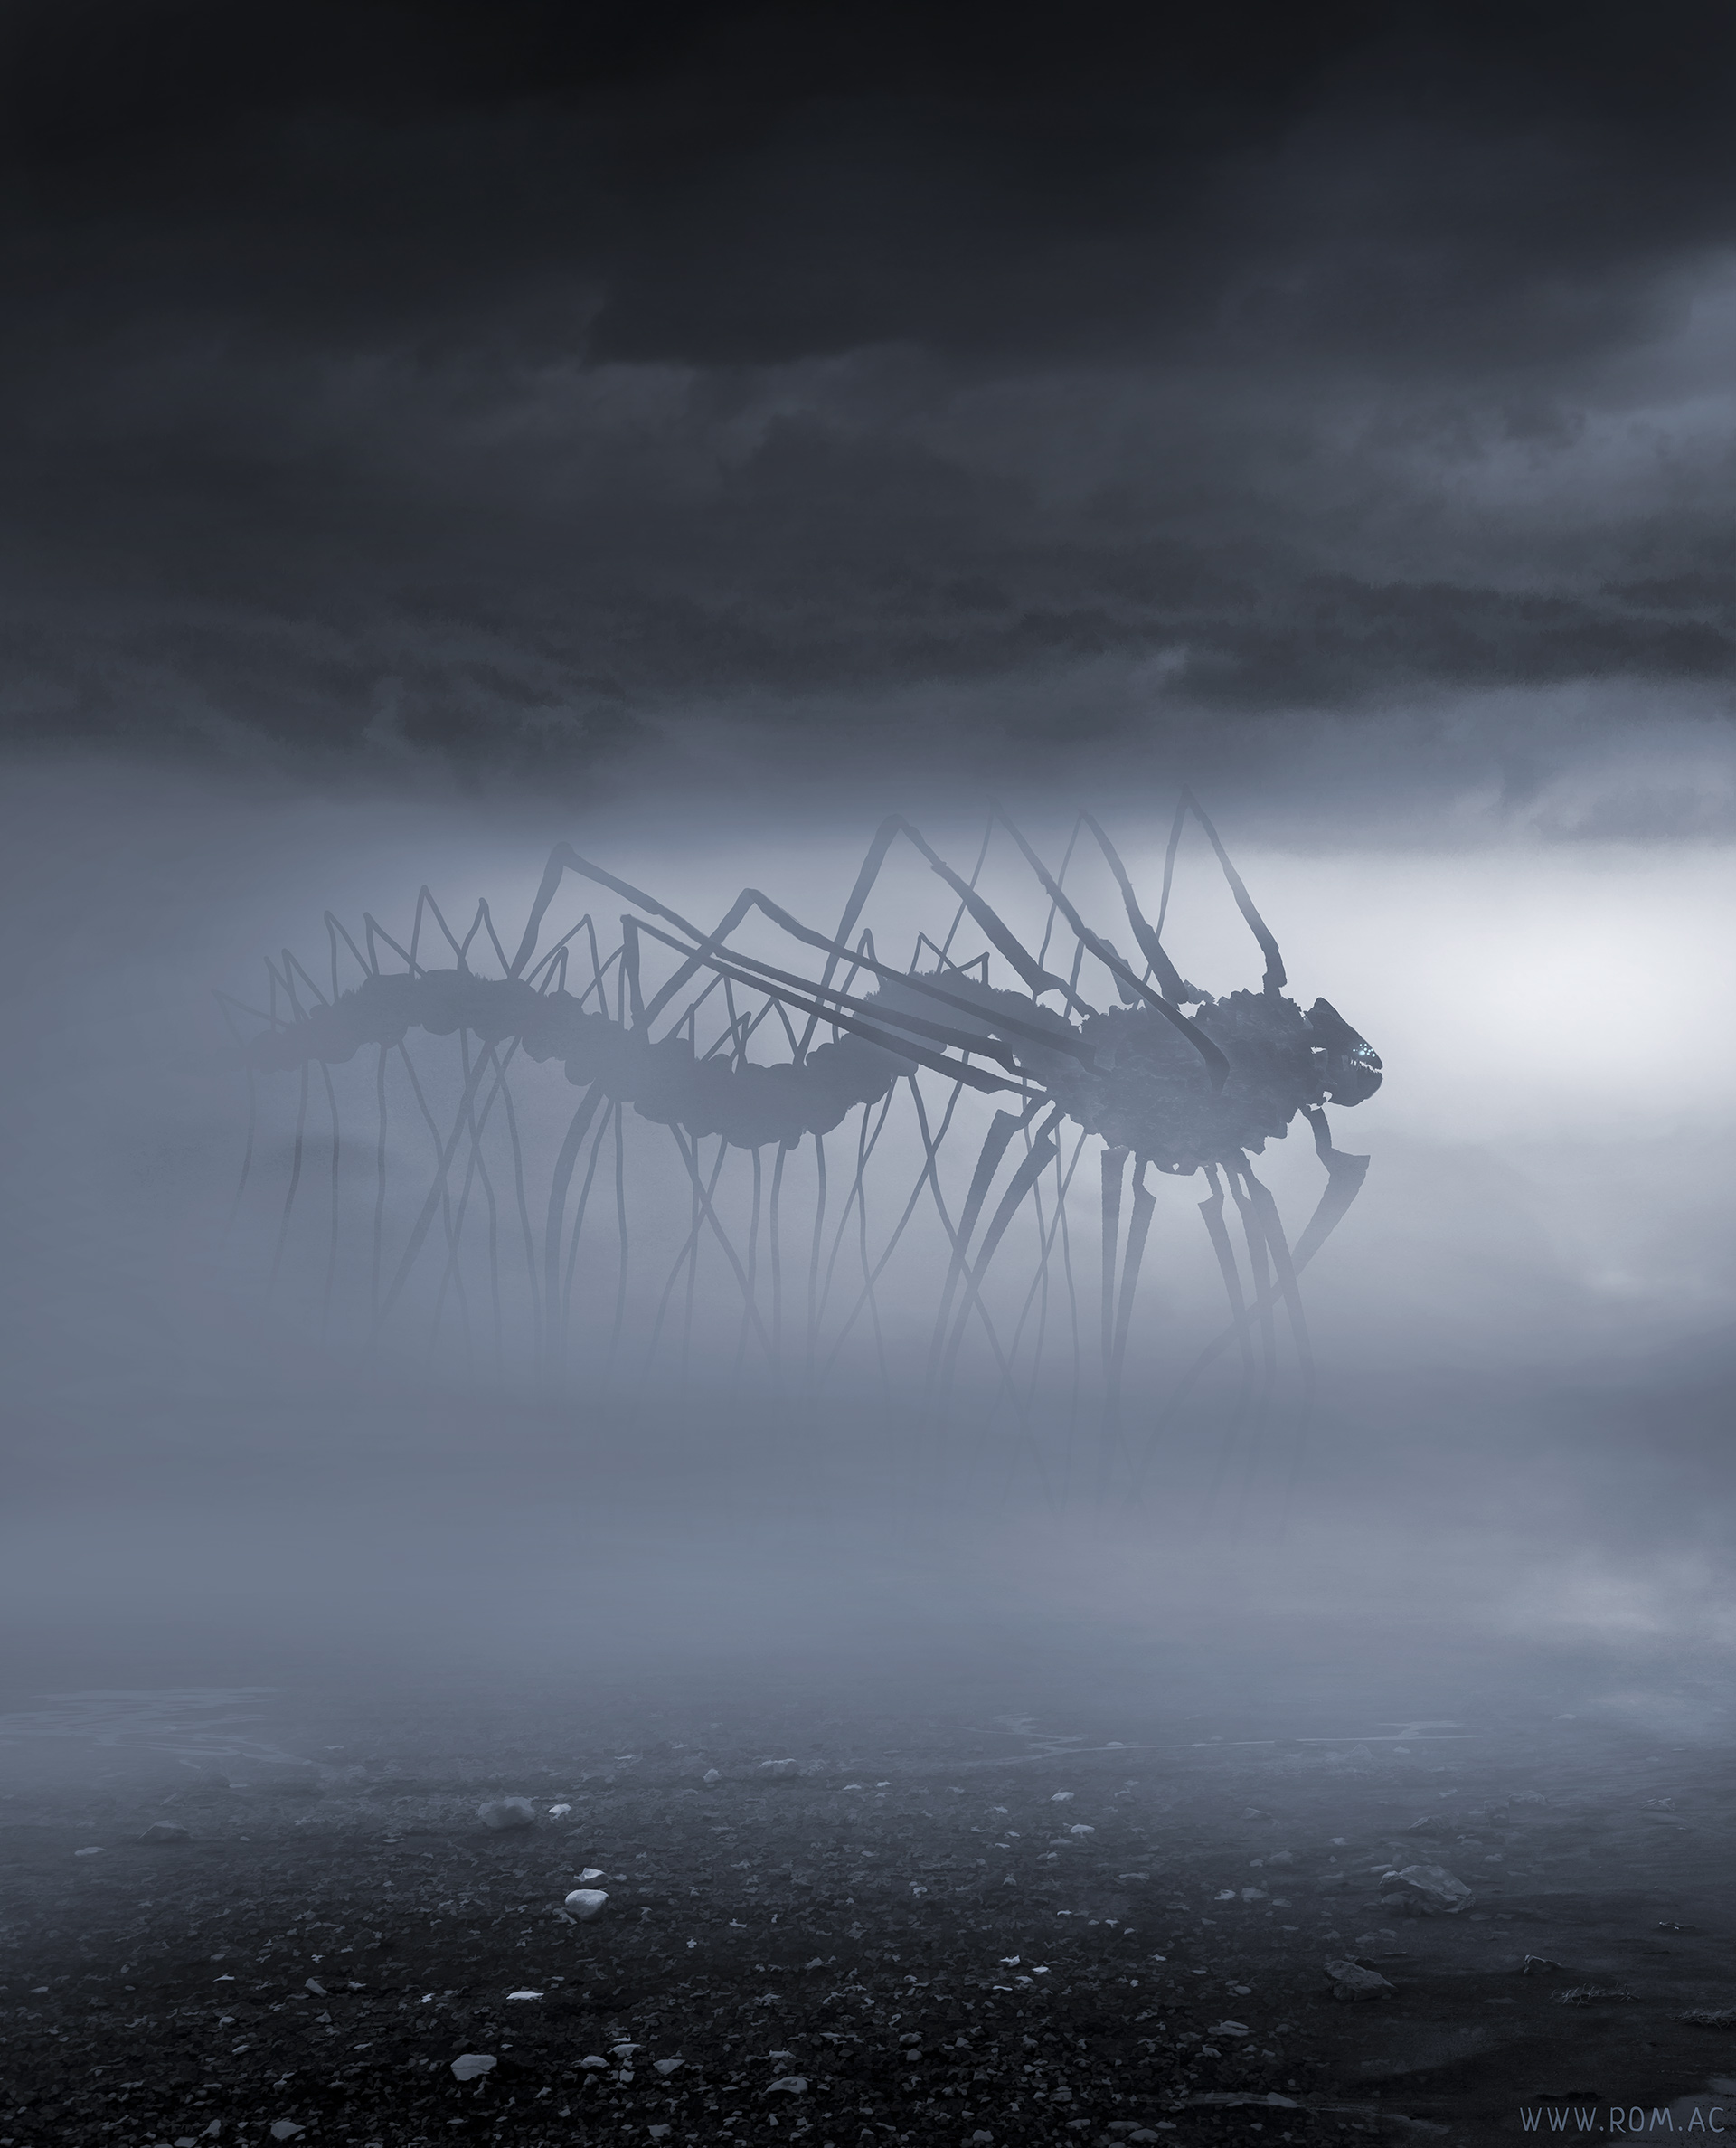 Something creeping in the fog by alexiuss on DeviantArt